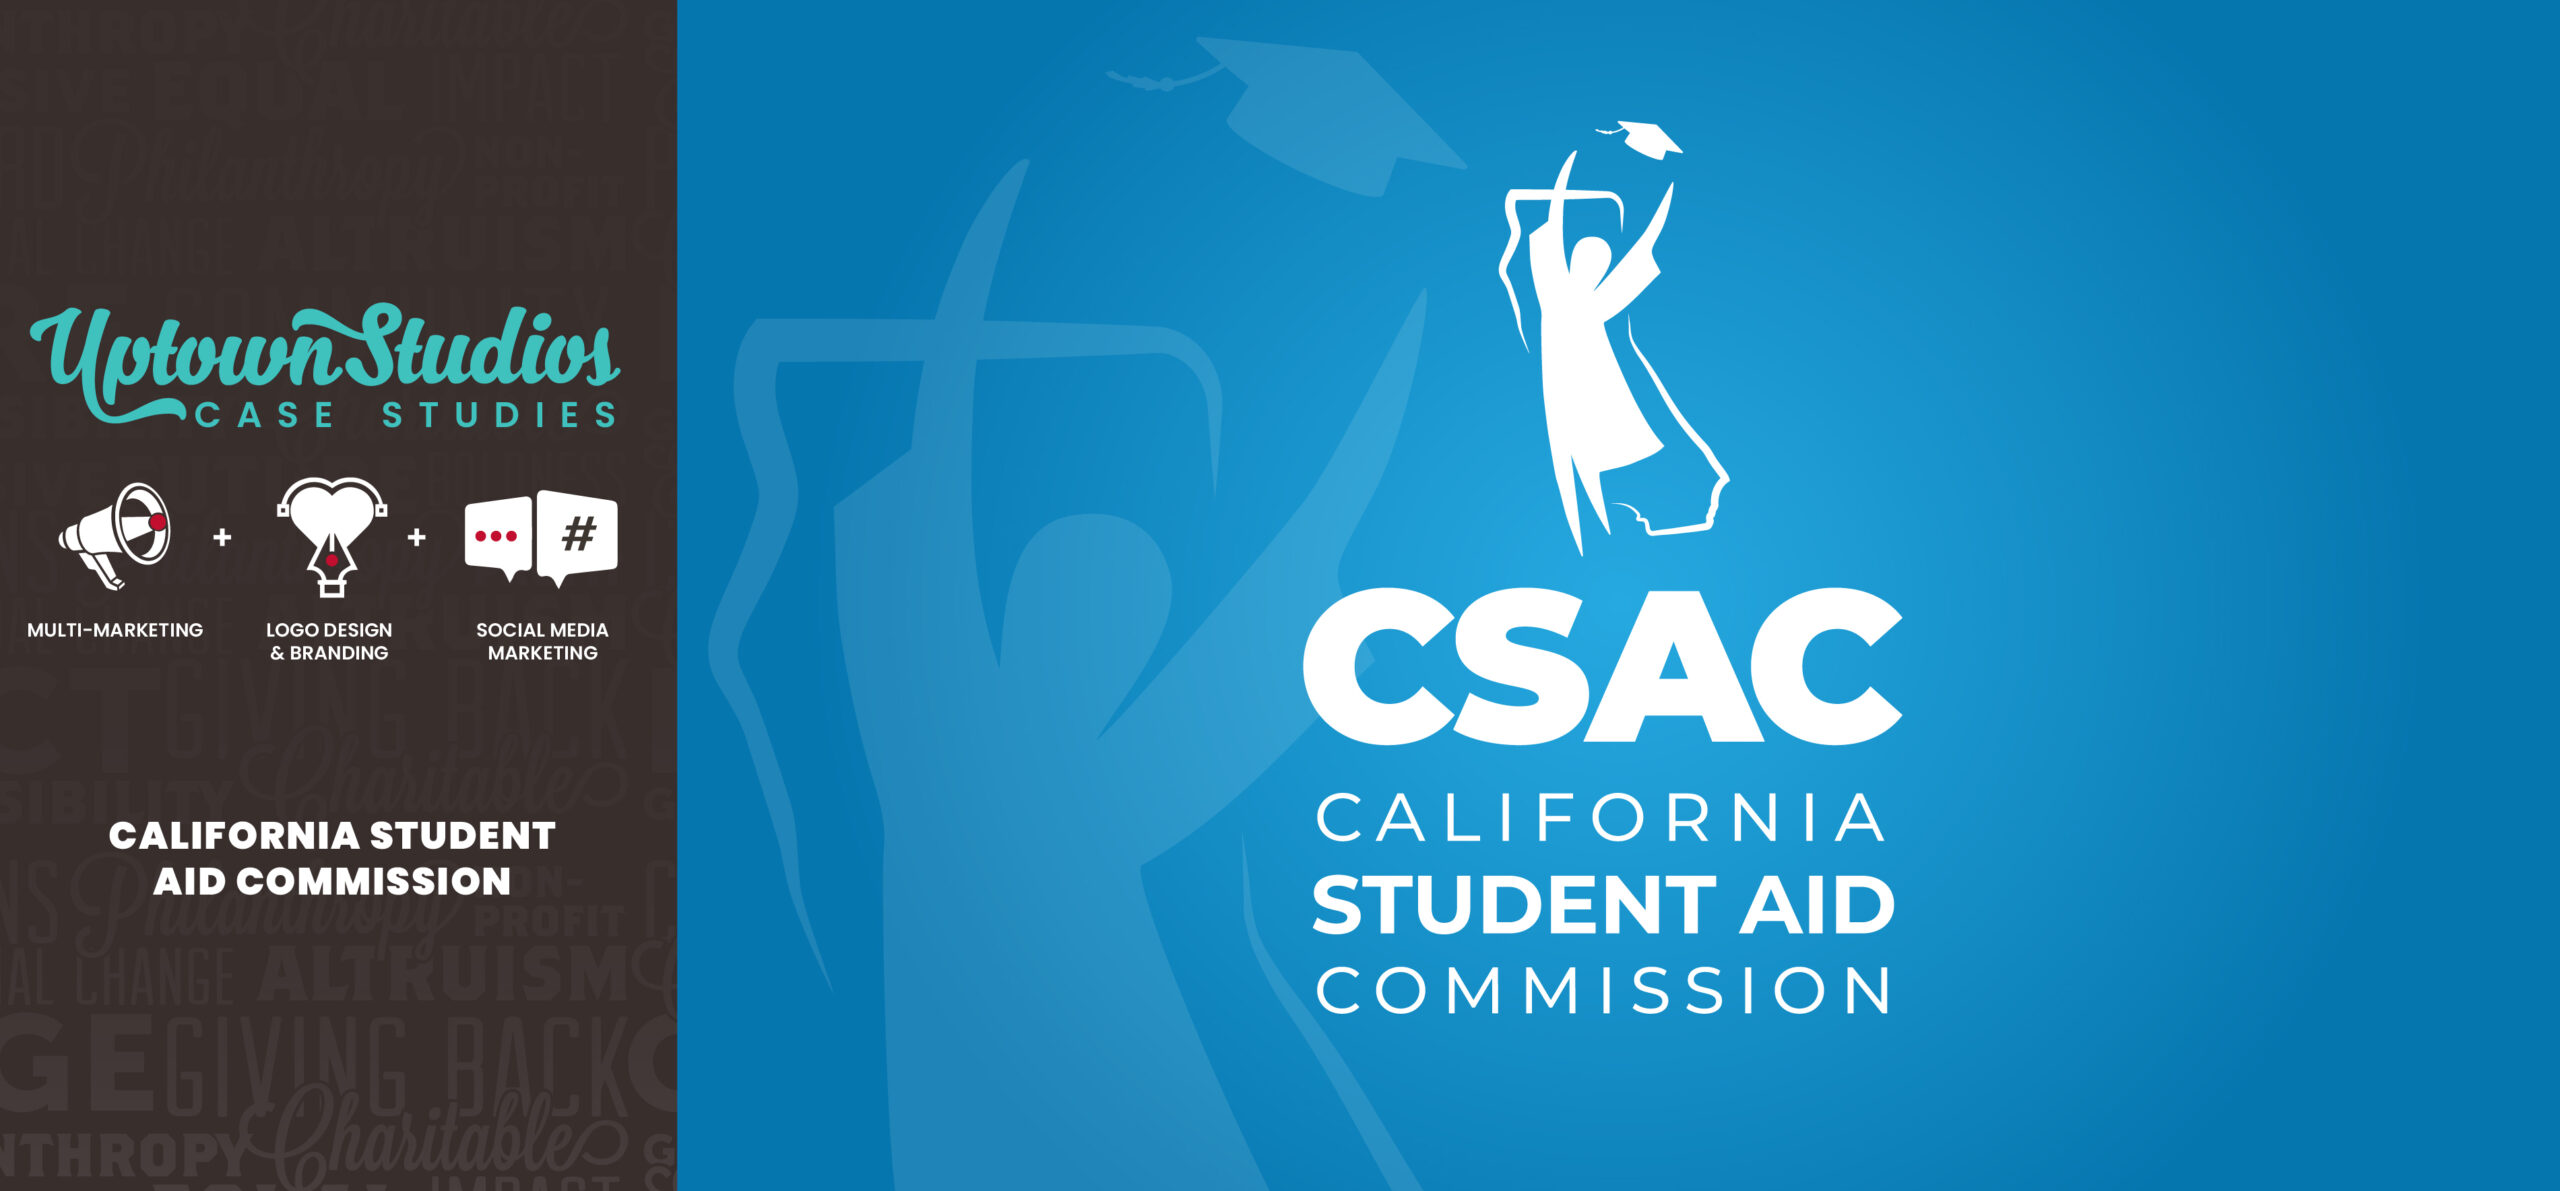 CSAC California Student Aid Commission Logo With Uptown Studios Bullhorn Heart And Social Media Icons On Left